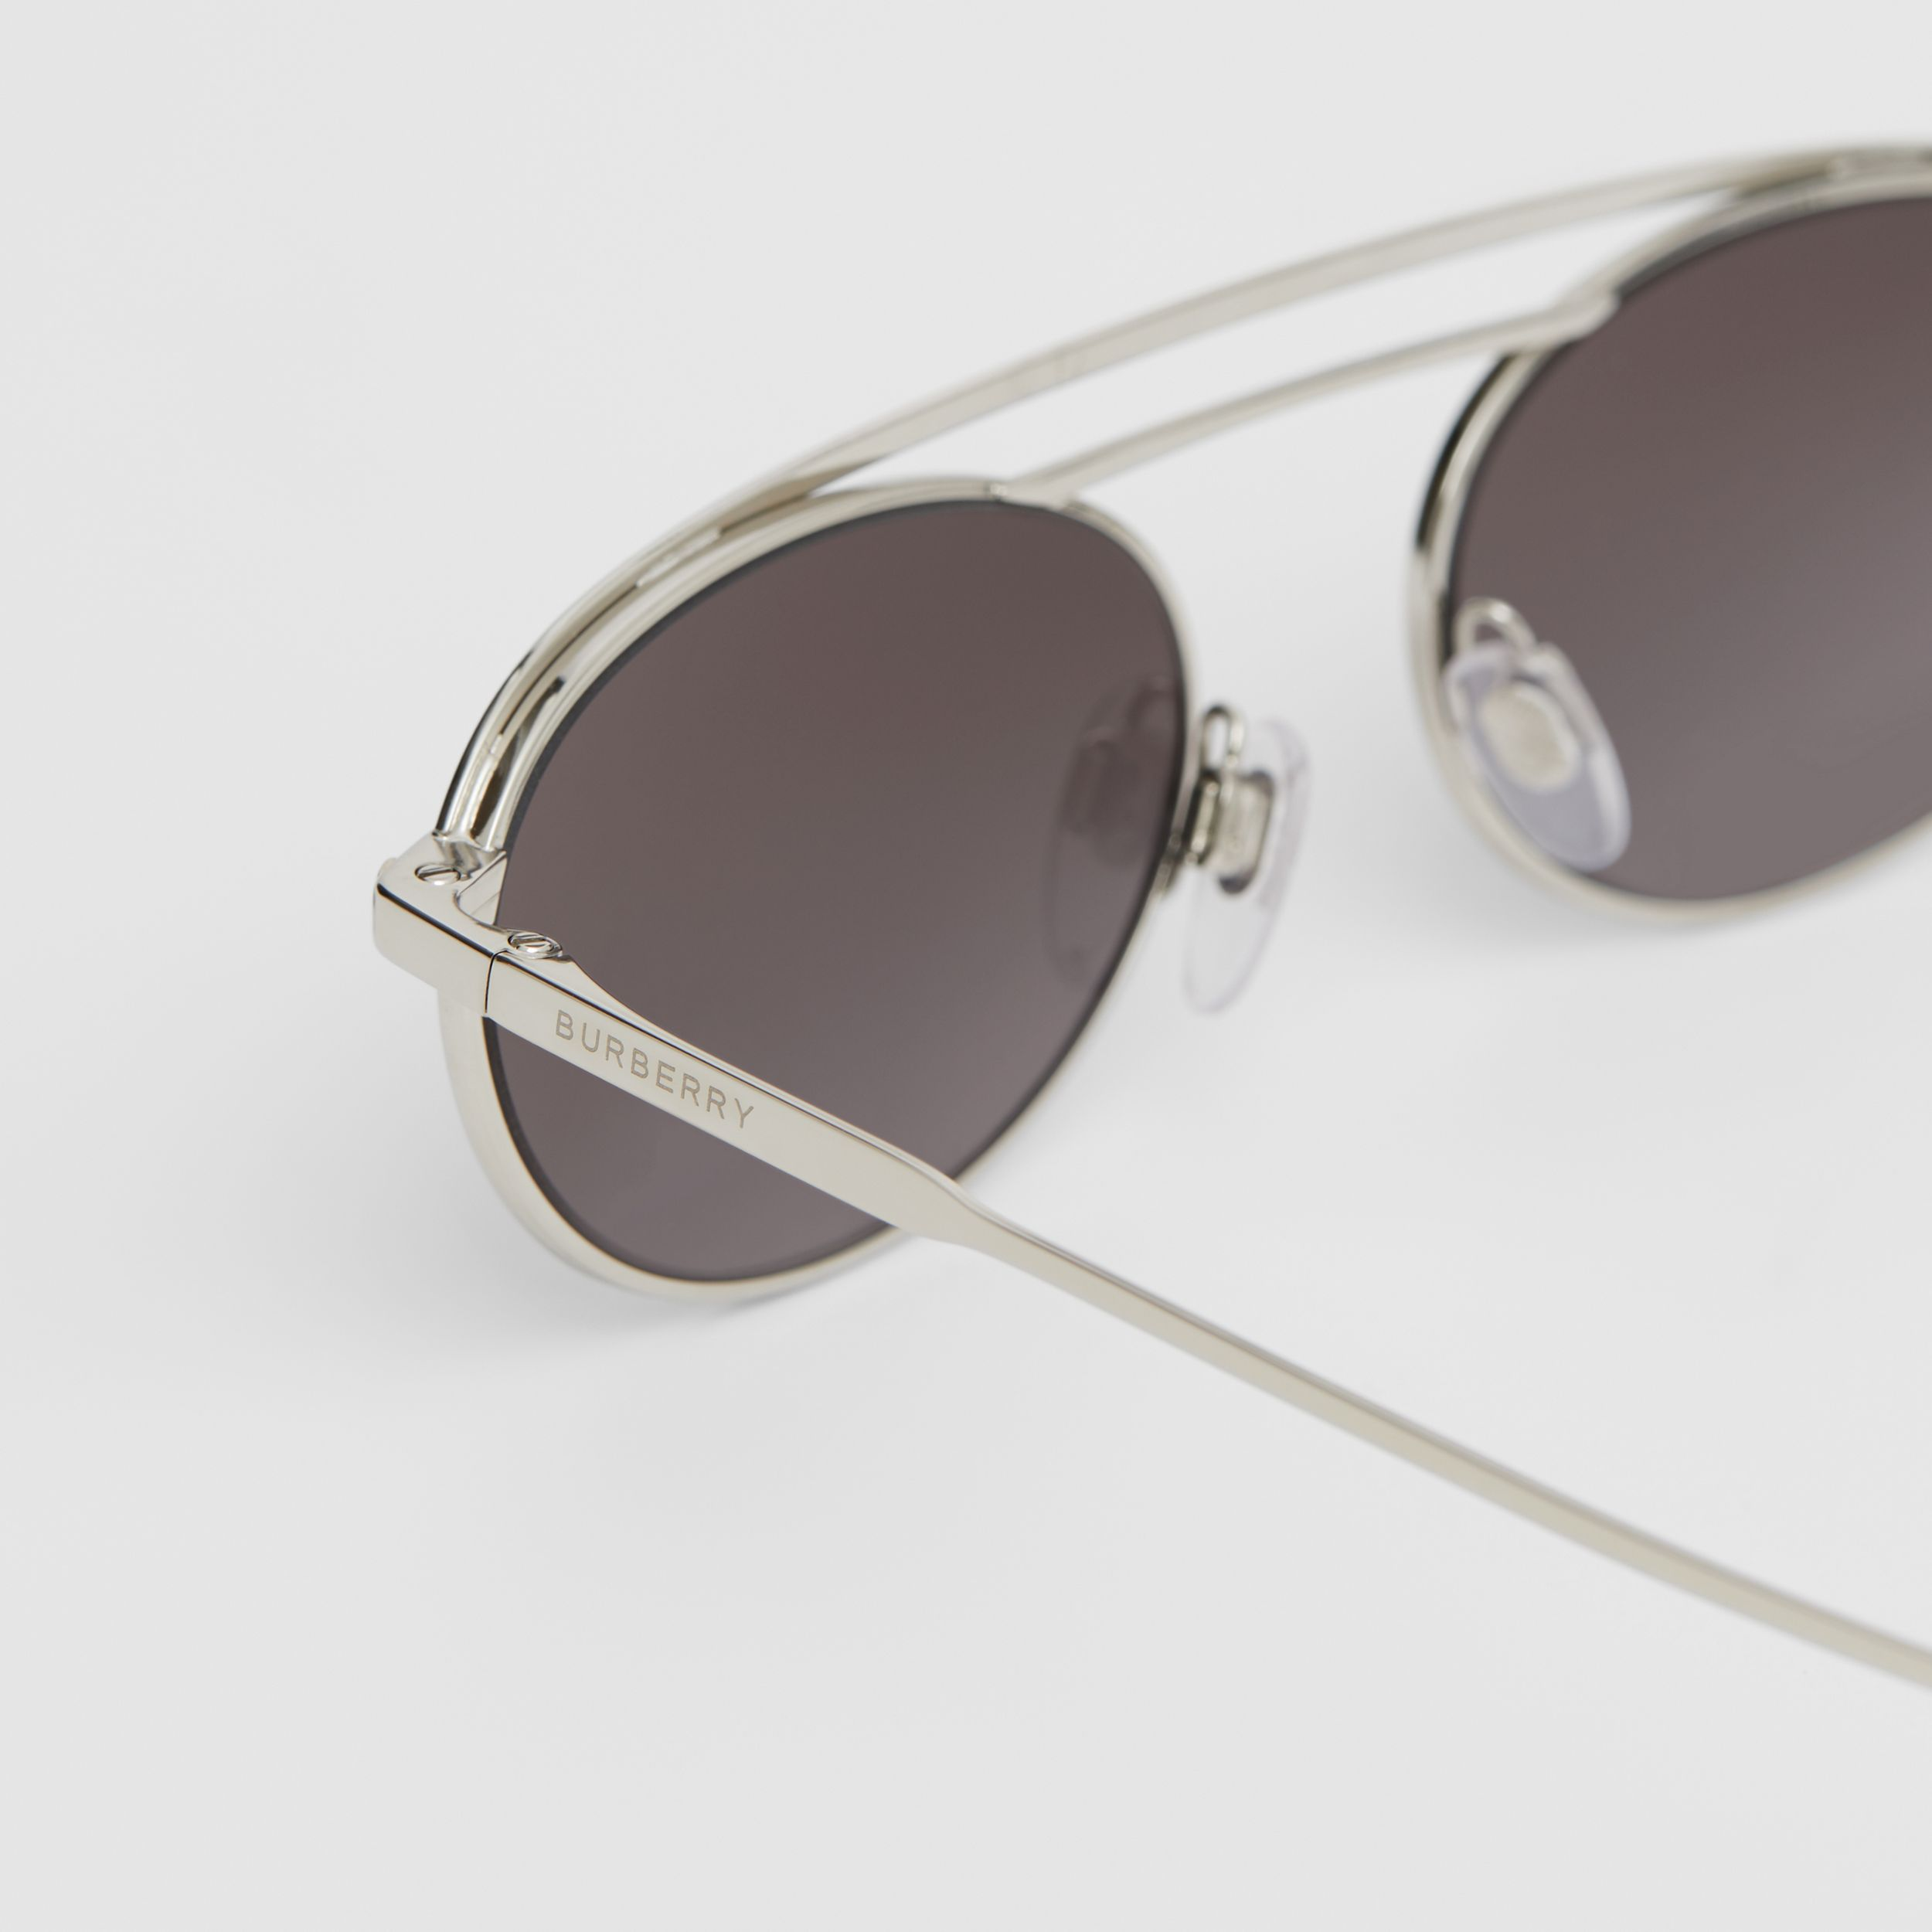 Oval Frame Sunglasses in Grey - Women | Burberry - 2